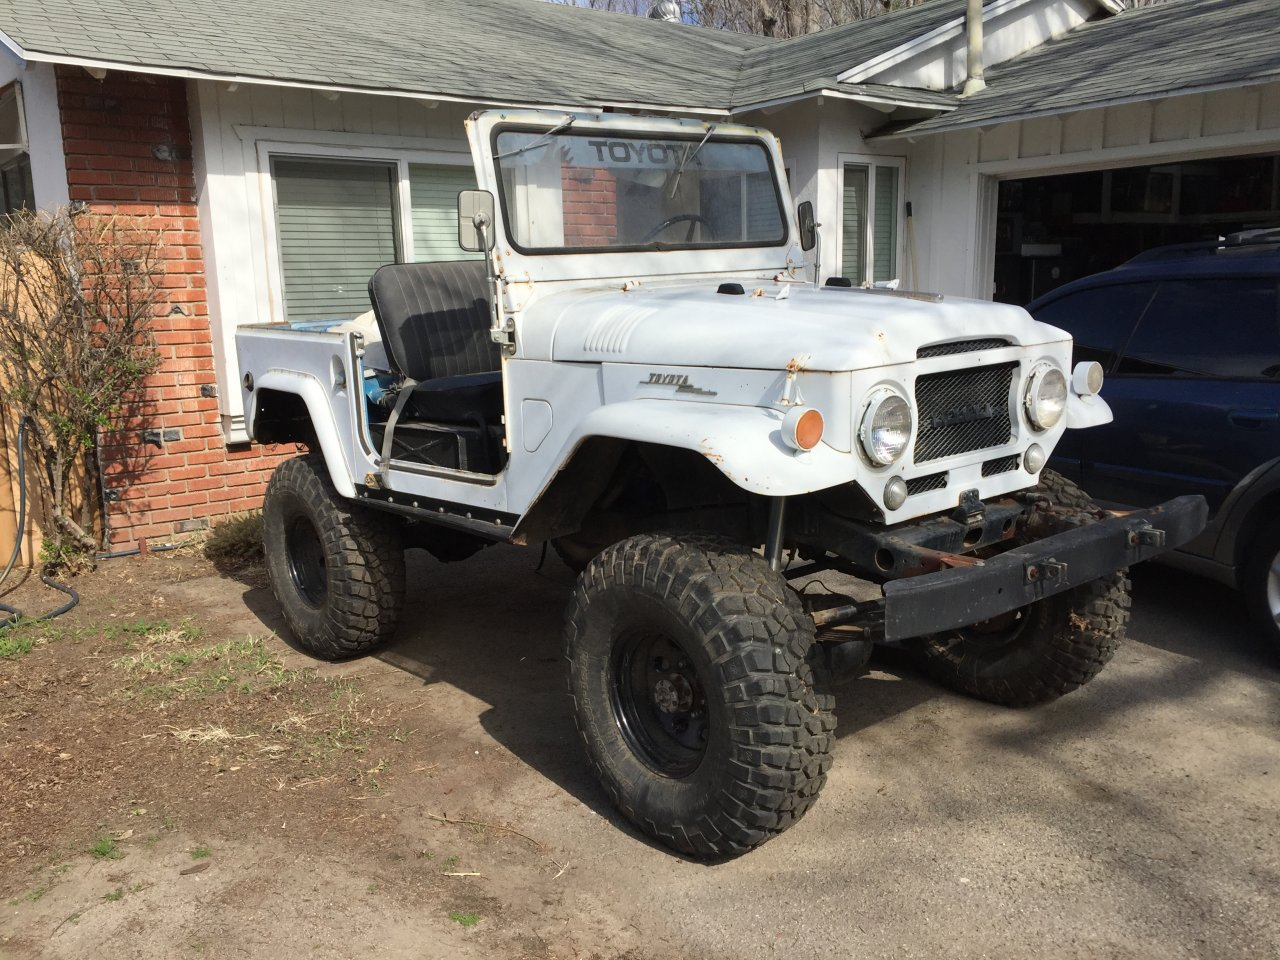 1967 Fj40 Chevy V8 Harness Install Tips Advice Ih8mud Forum Wiring Diagram Painless Few Of The Reasons For Re Wire Personal Knowledge Vehicle Electrical System Piece Mind Learning Experience Water Proofing